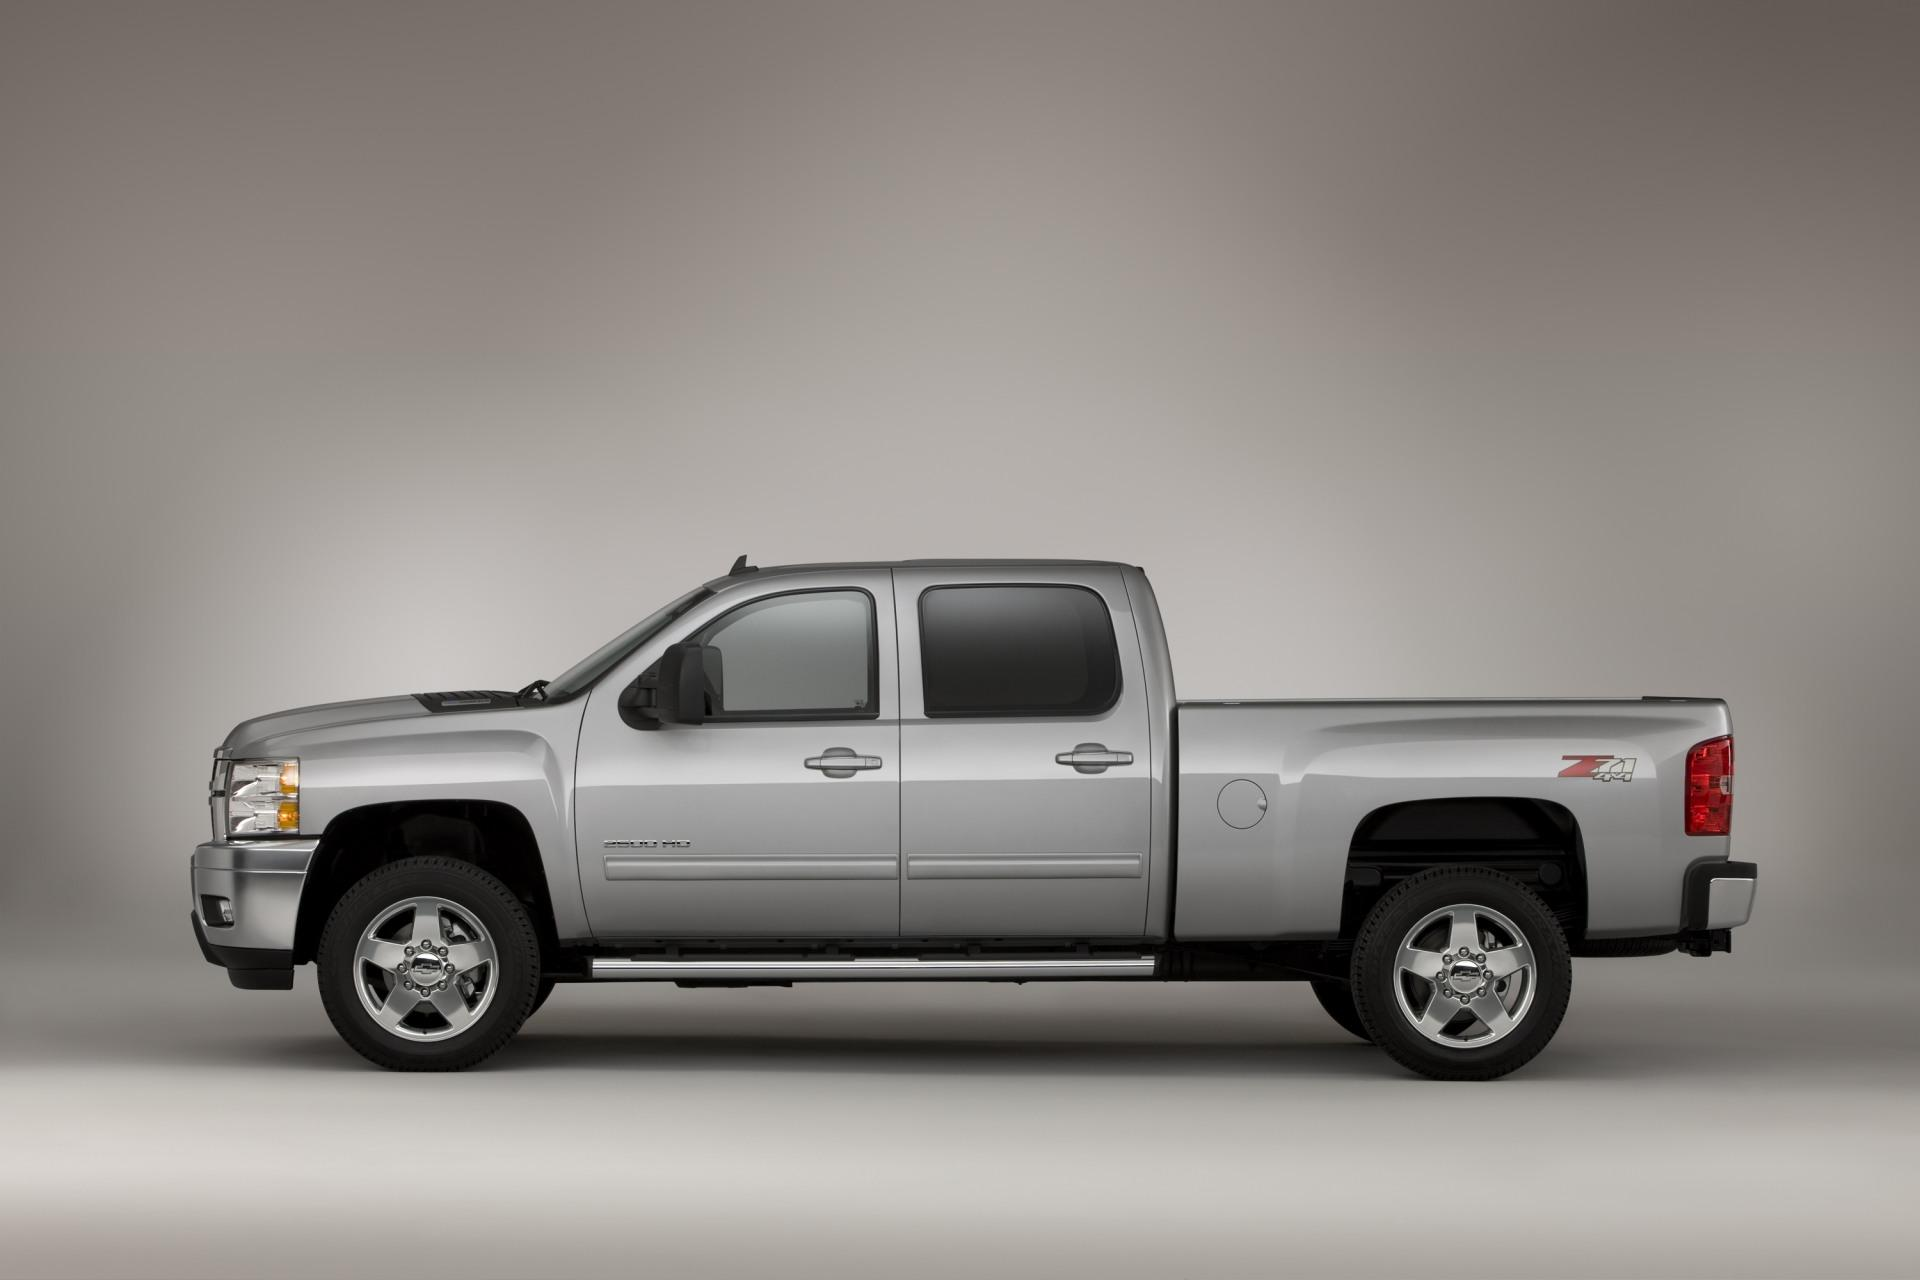 2011 Chevrolet Silverado Hd News And Information 1966 Truck C10 12 Ton Pu 2wd 4